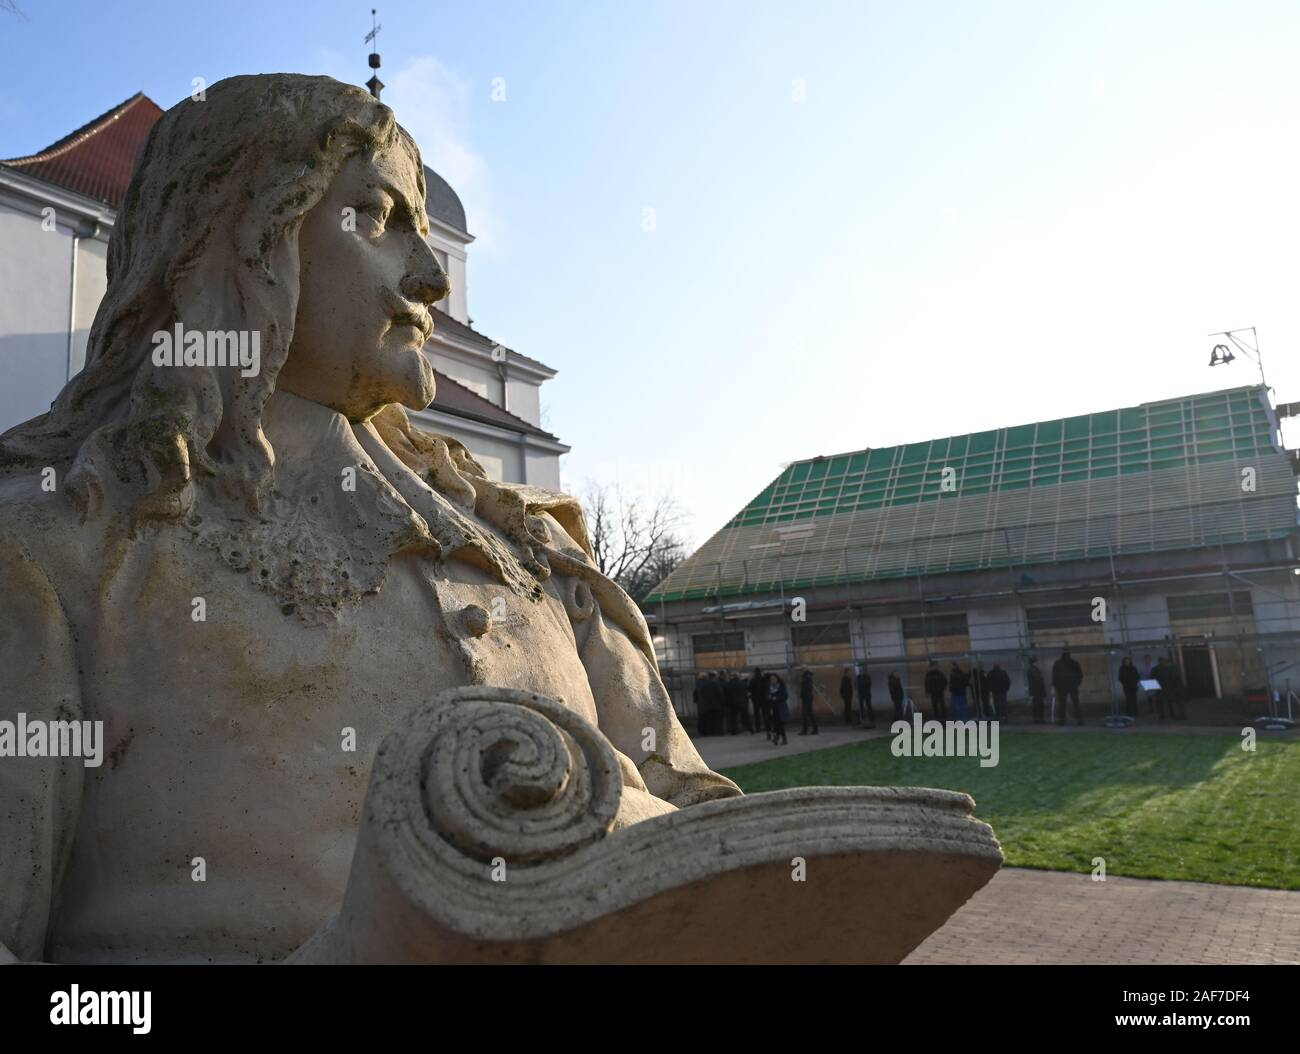 Altlandsberg, Germany. 13th Dec, 2019. A sandstone sculpture by Otto Freyherr von Schwerin (Lord of Old Landsberg 1654 - 1679) stands on the Altlandsberg castle estate in front of the Orangery. The Orangerie, which was part of the baroque park, was rebuilt on a historic site. Credit: Bernd Settnik/dpa-Zentralbild/ZB/dpa/Alamy Live News Stock Photo